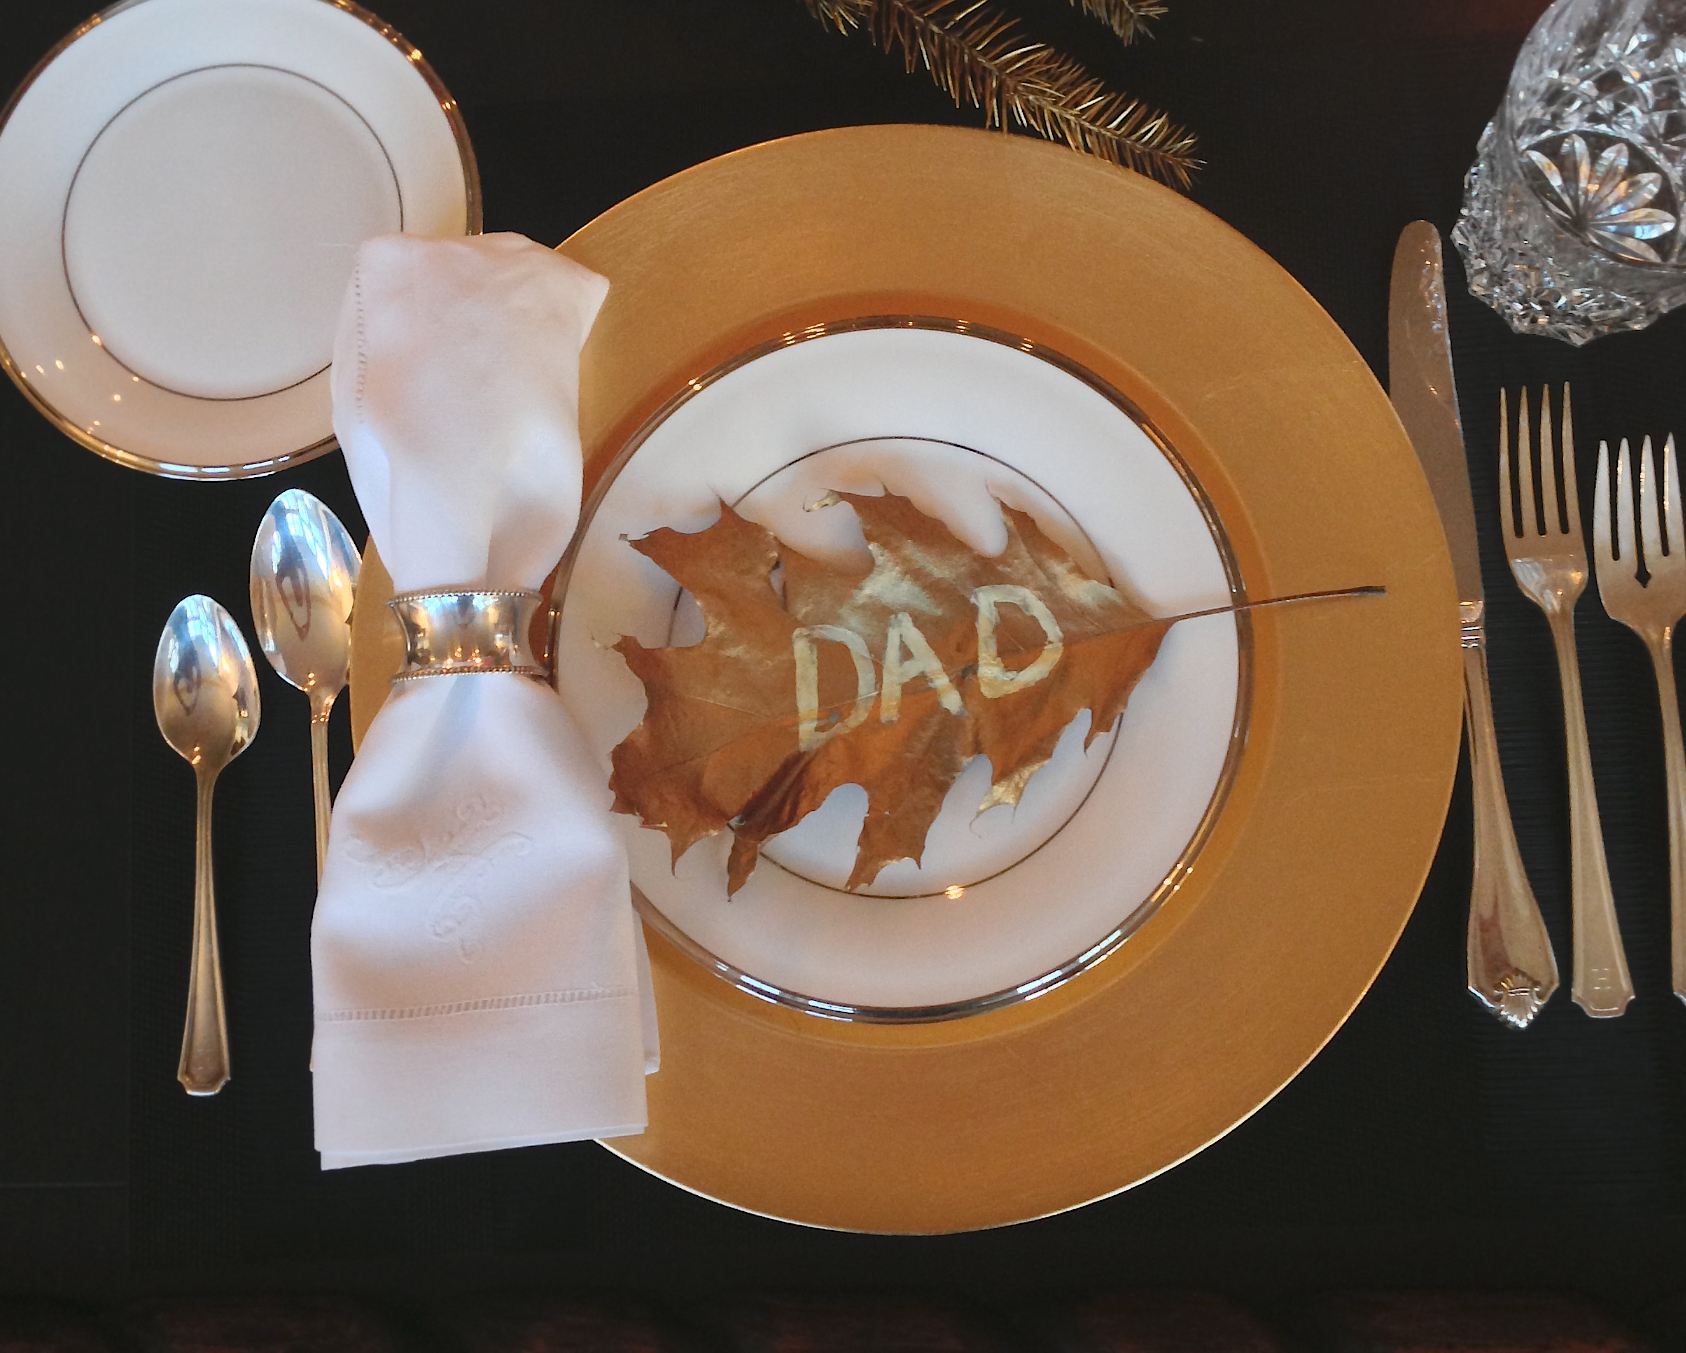 Gold Leaf Place Settings - DIY Name Cards for Holiday Season